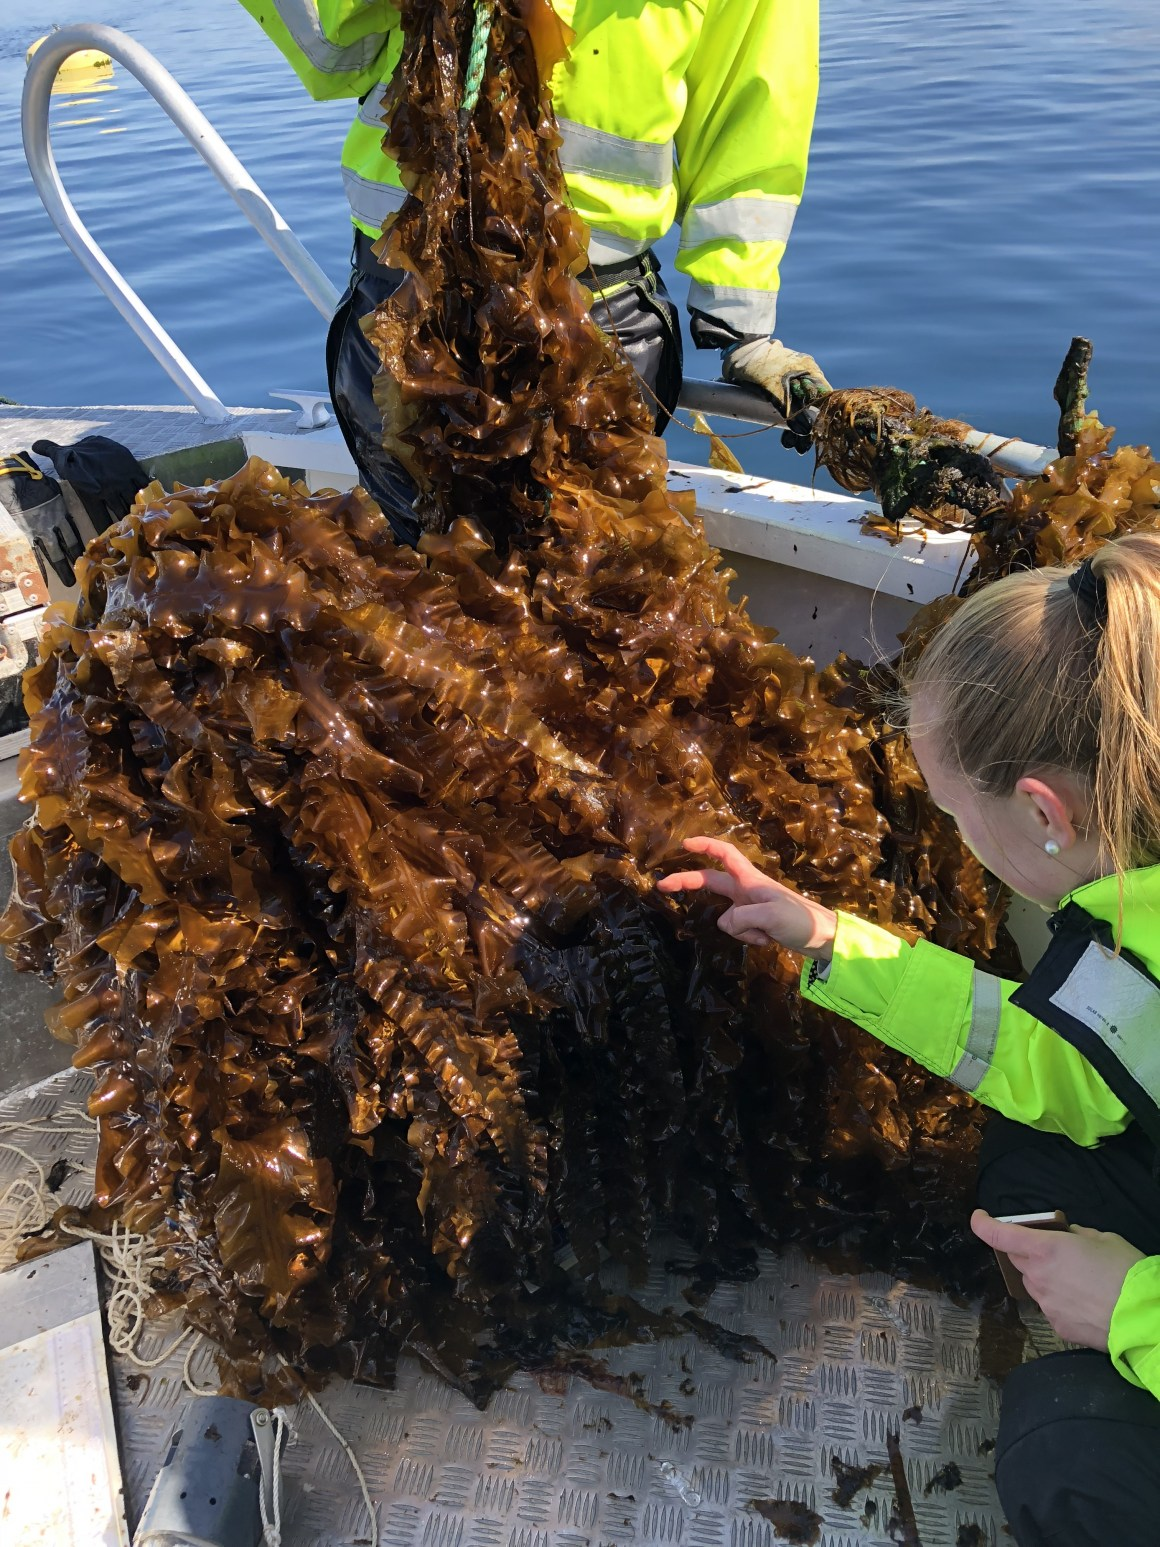 Cultivated sugar kelp was harvested near Frøya in May. The photo is taken by SINTEF Ocean, one of the partners in the pilot project.